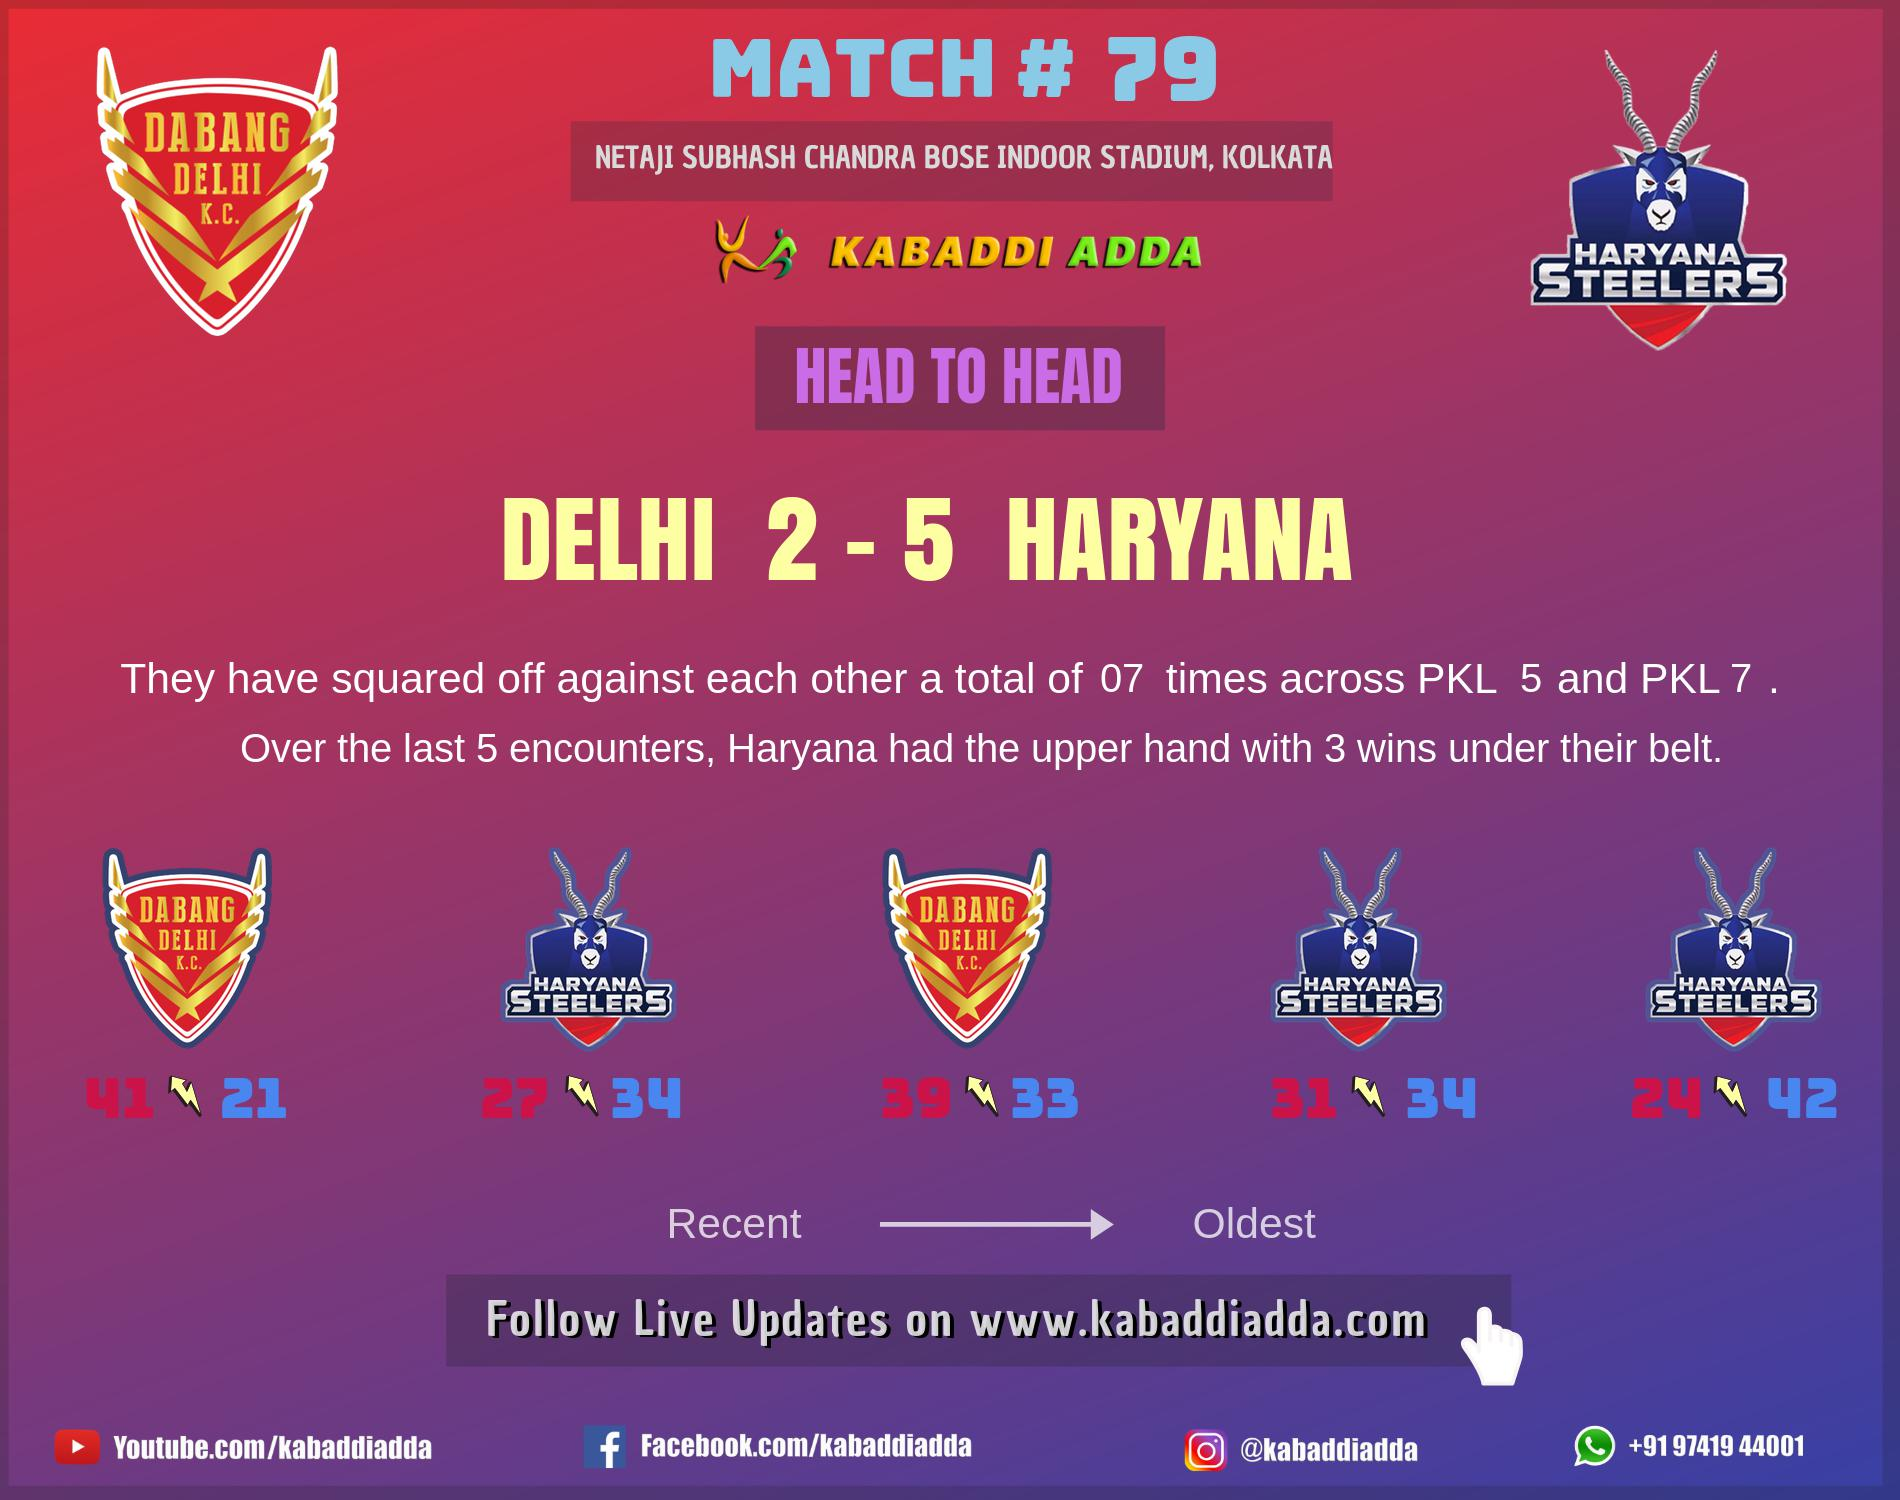 Dabang Delhi is playing against Haryana Steelers